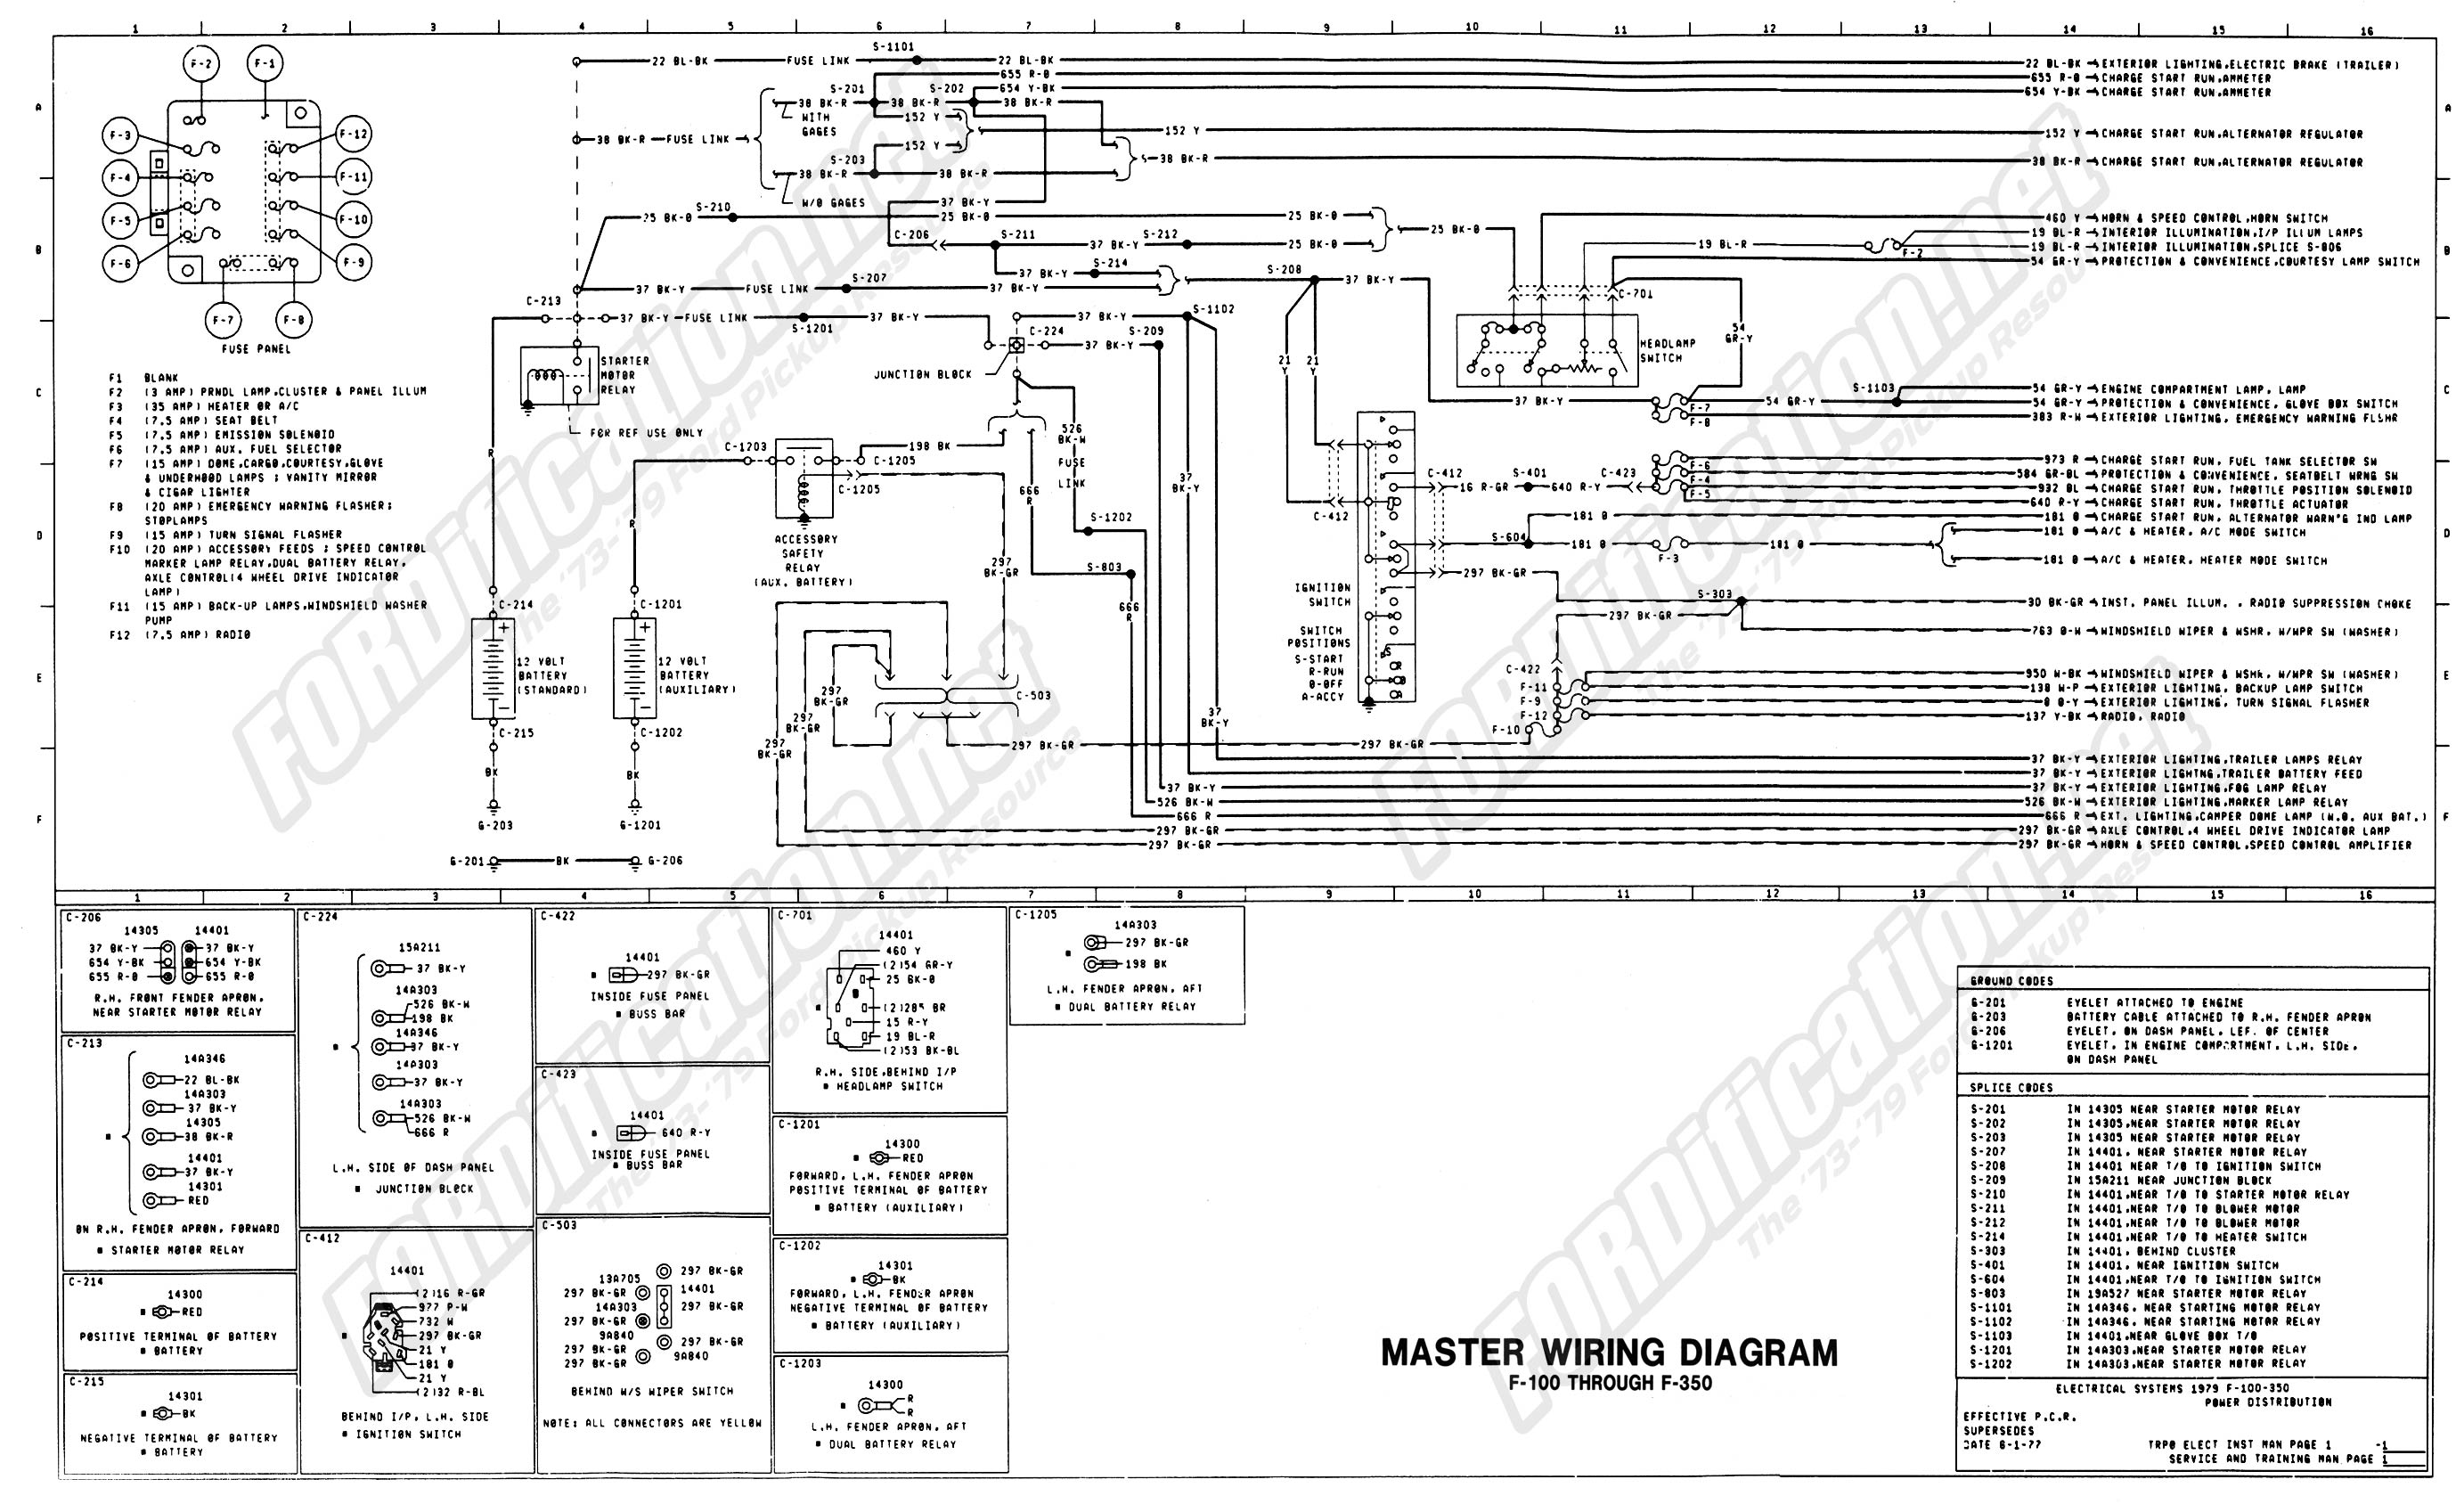 ford e wiring diagram 1979 f100 ignition switch wiring diagram positions ford truck fyi this th was started two years